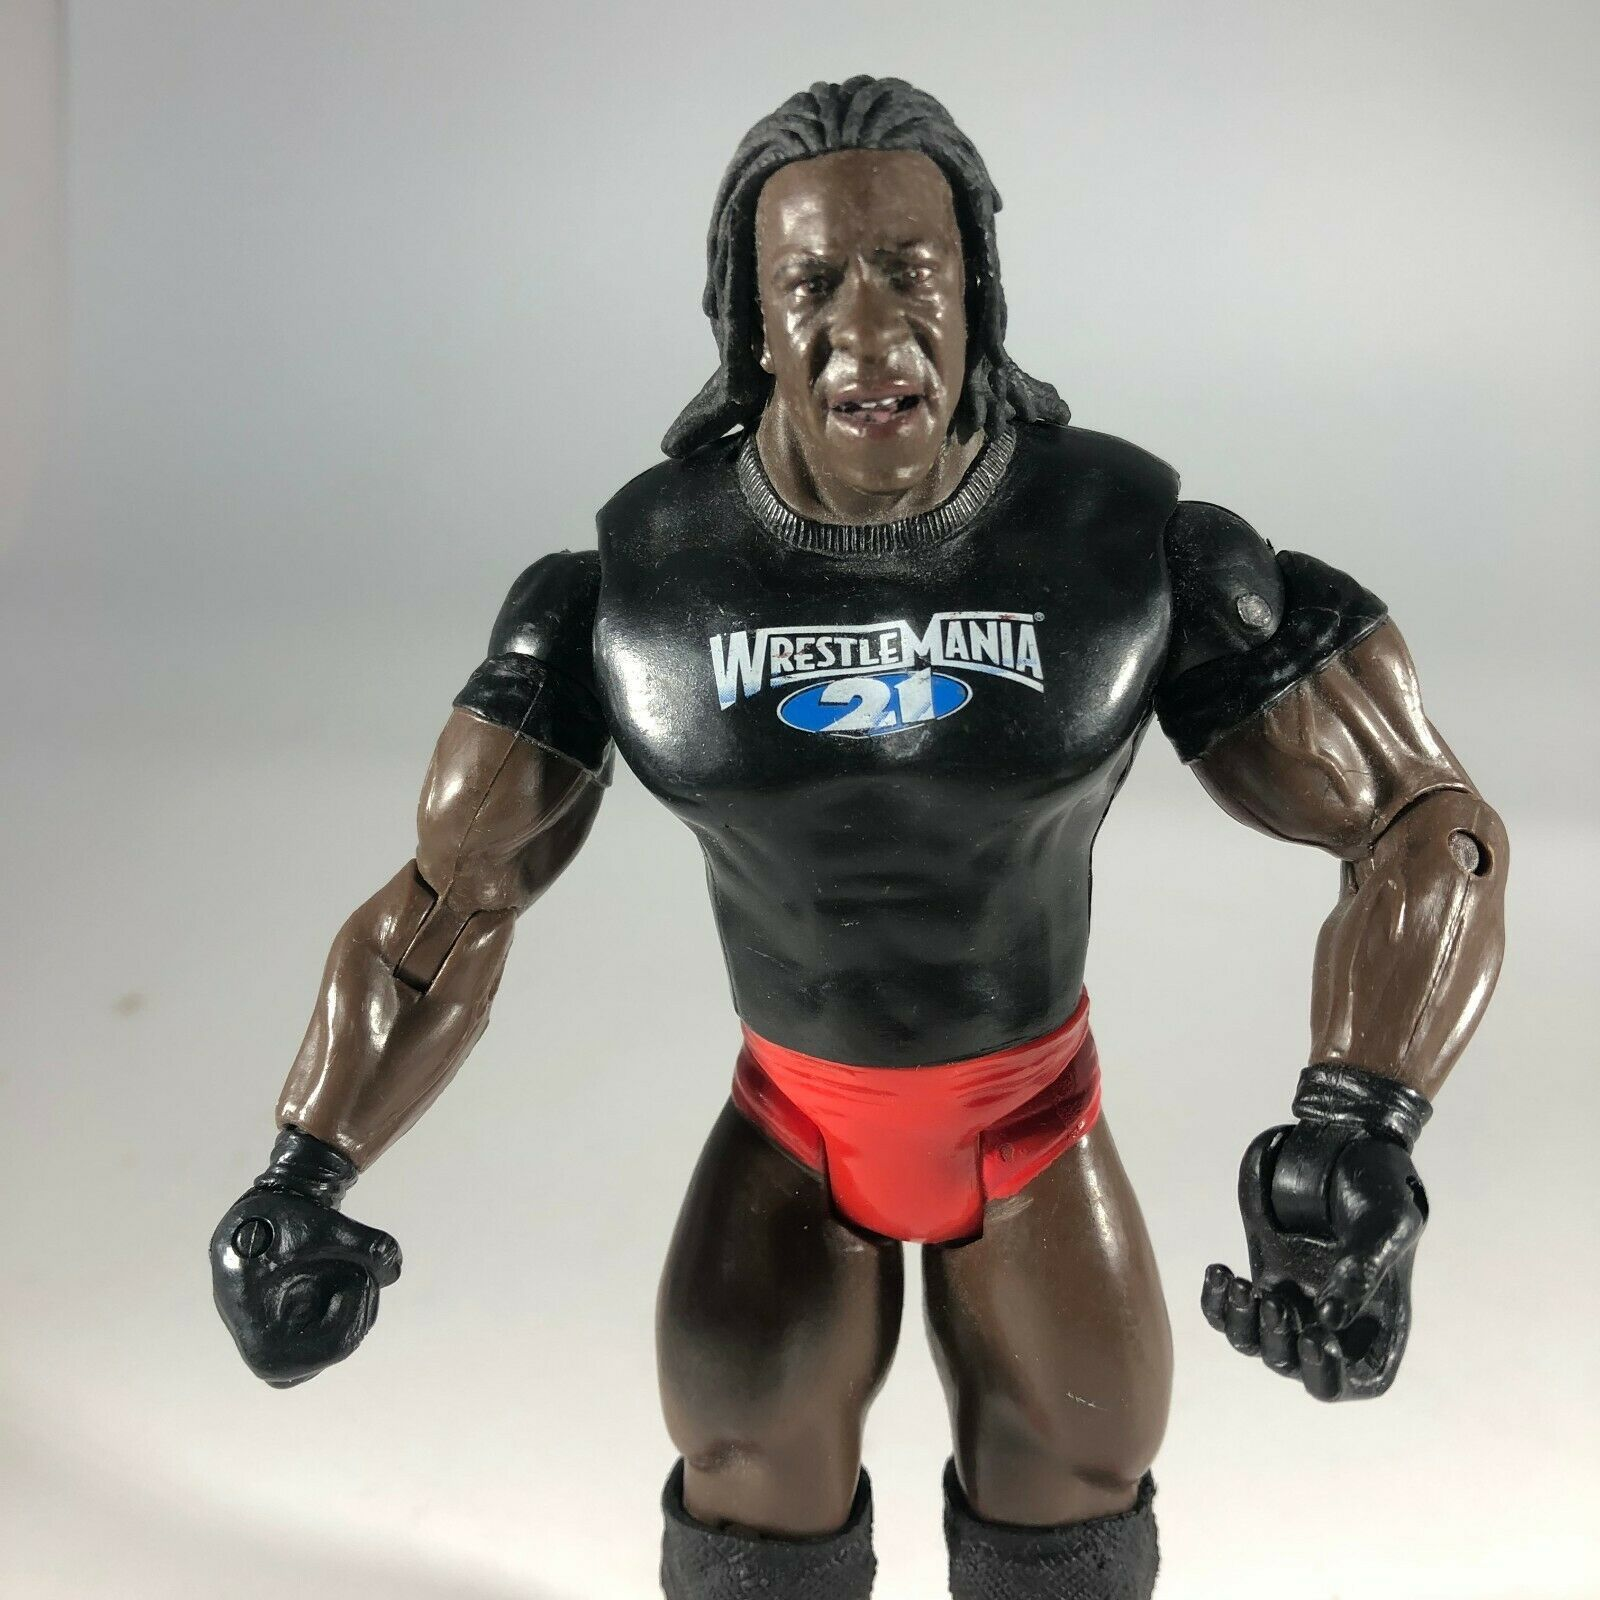 Primary image for WWE Booker T Wrestlemania 21 Wrestling Action Figure Vintage 2003